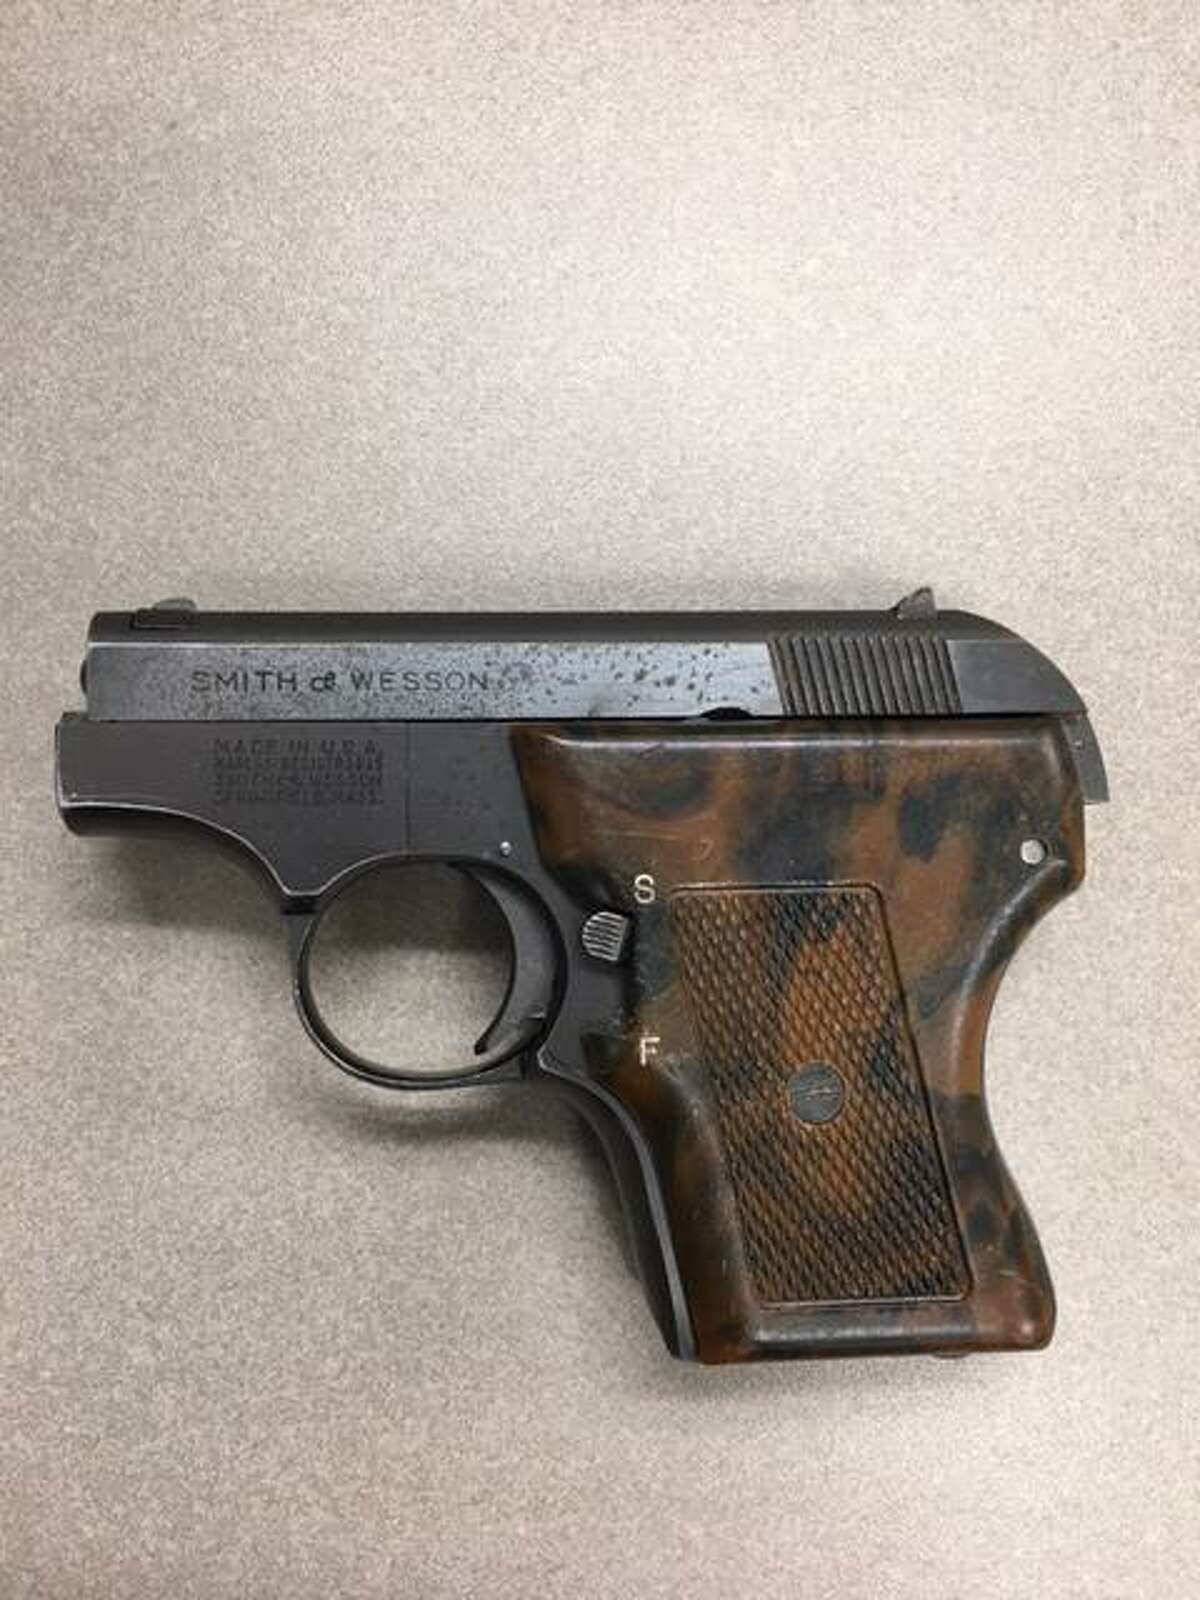 A Smith & Wesson .22 caliber semiautomatic handgun was found by Stamford Police on Dale Street on Sunday, July 5.